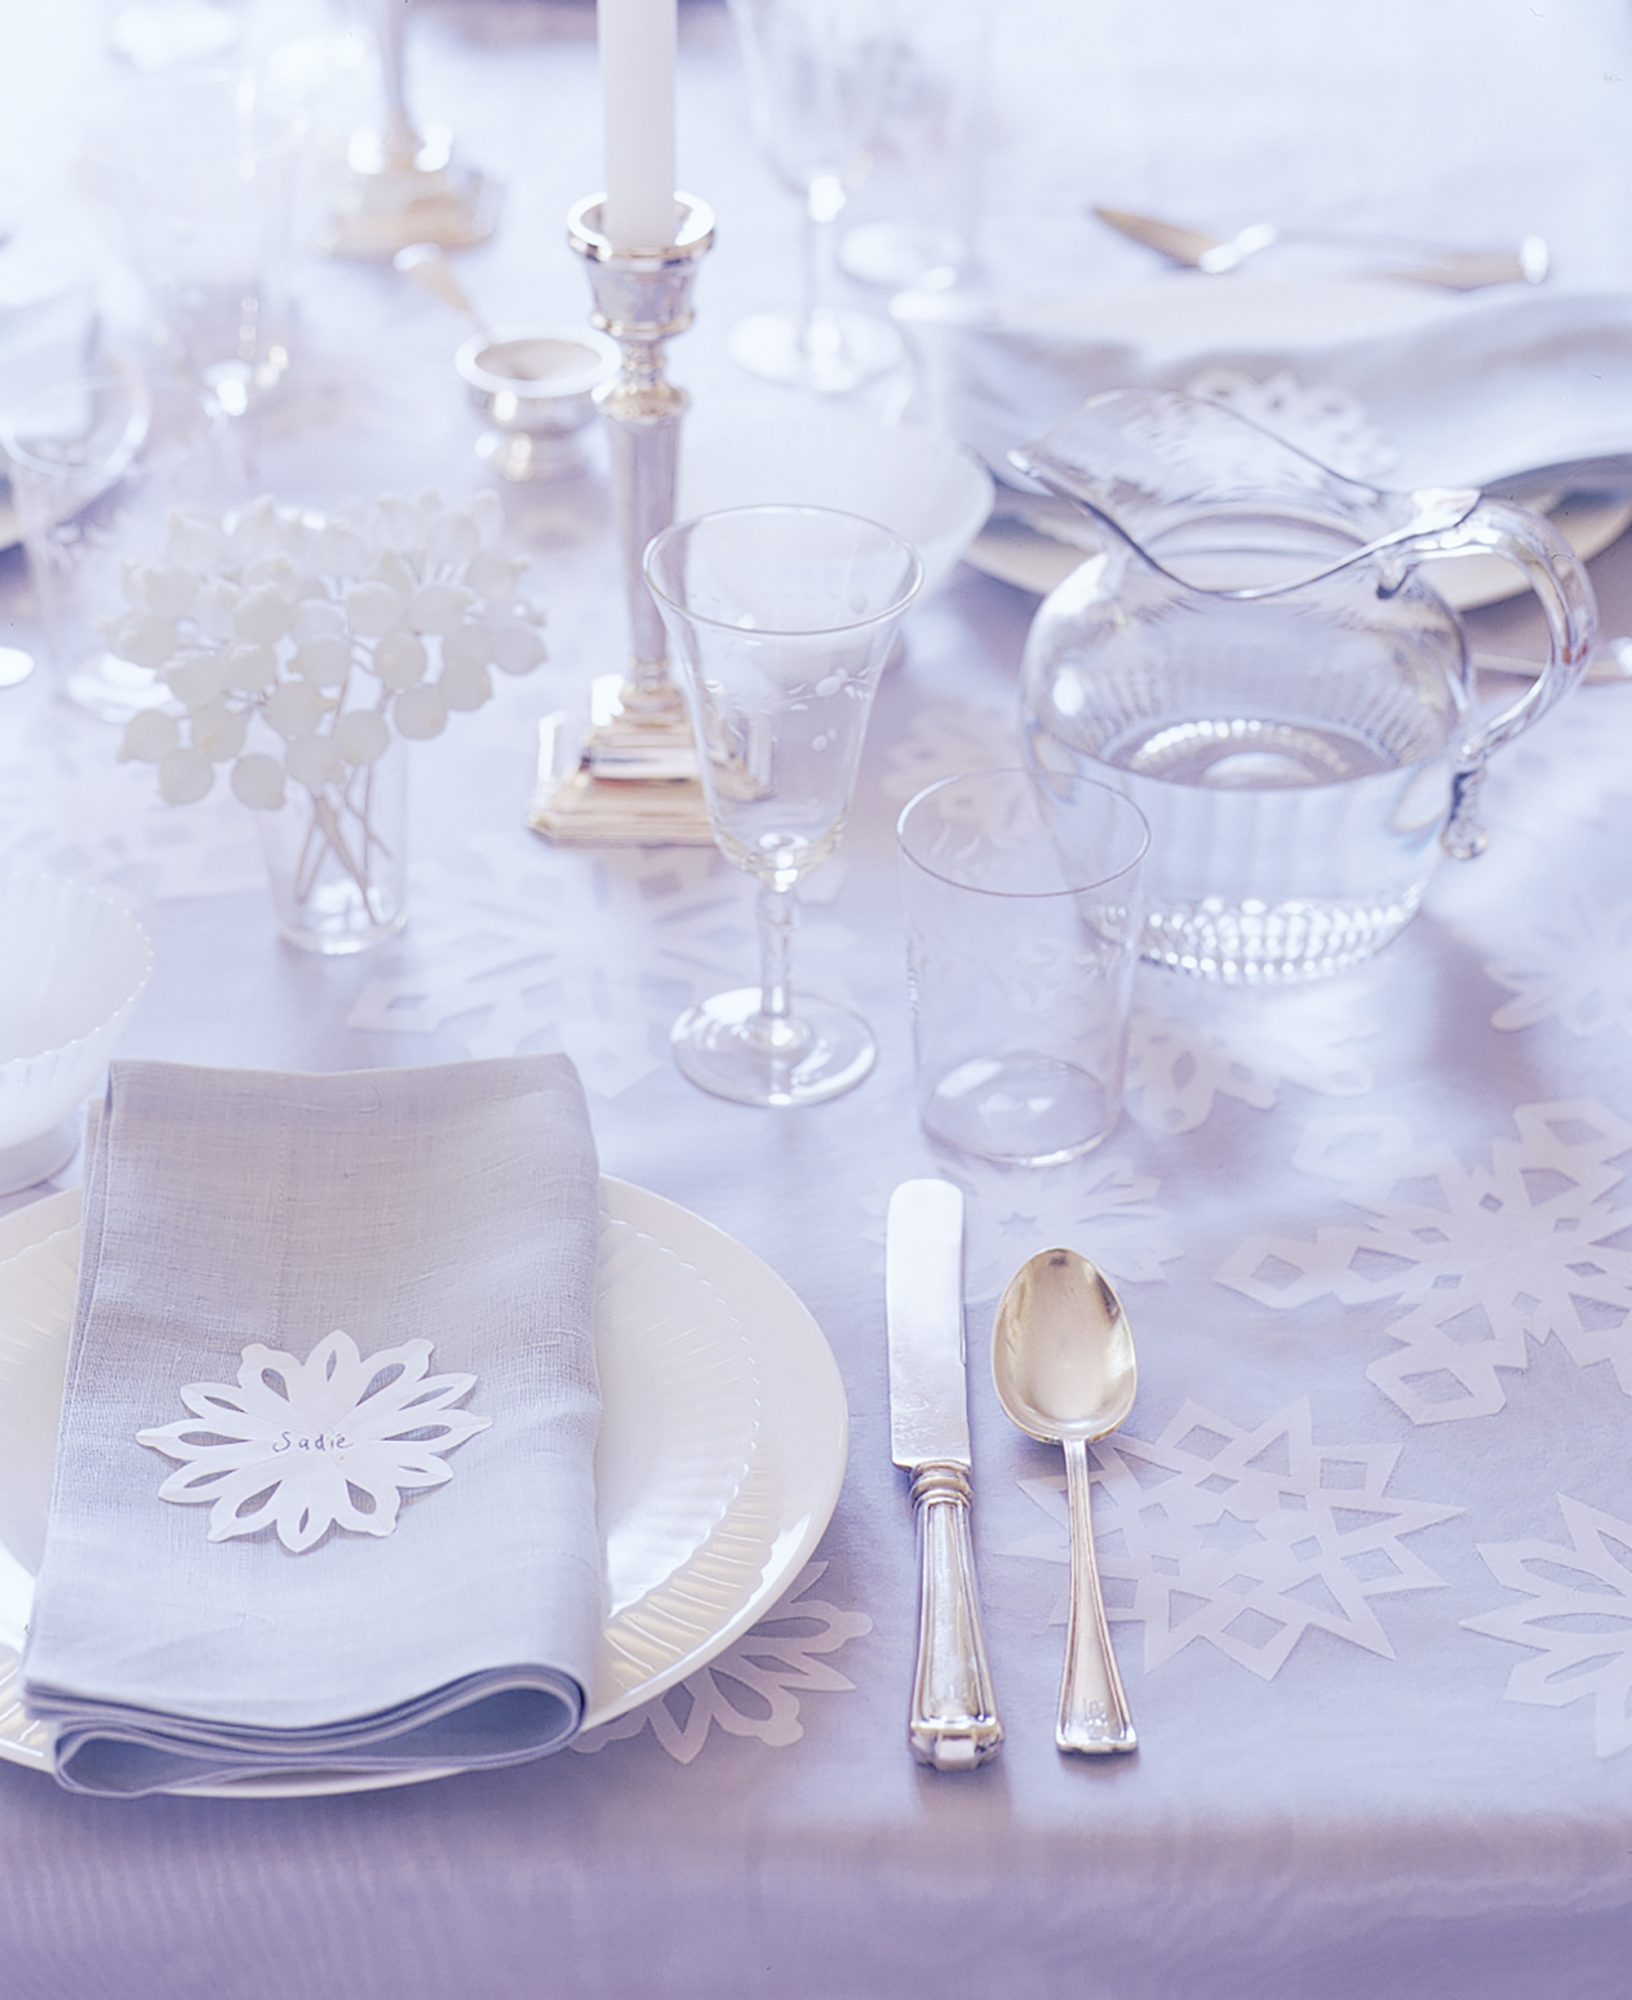 A holiday dinner table evokes drifts of snow when adorned with paper versions beneath your holiday spread. You can also create smaller versions of the same snowflake pattern to use as place cards upon each setting on the table.